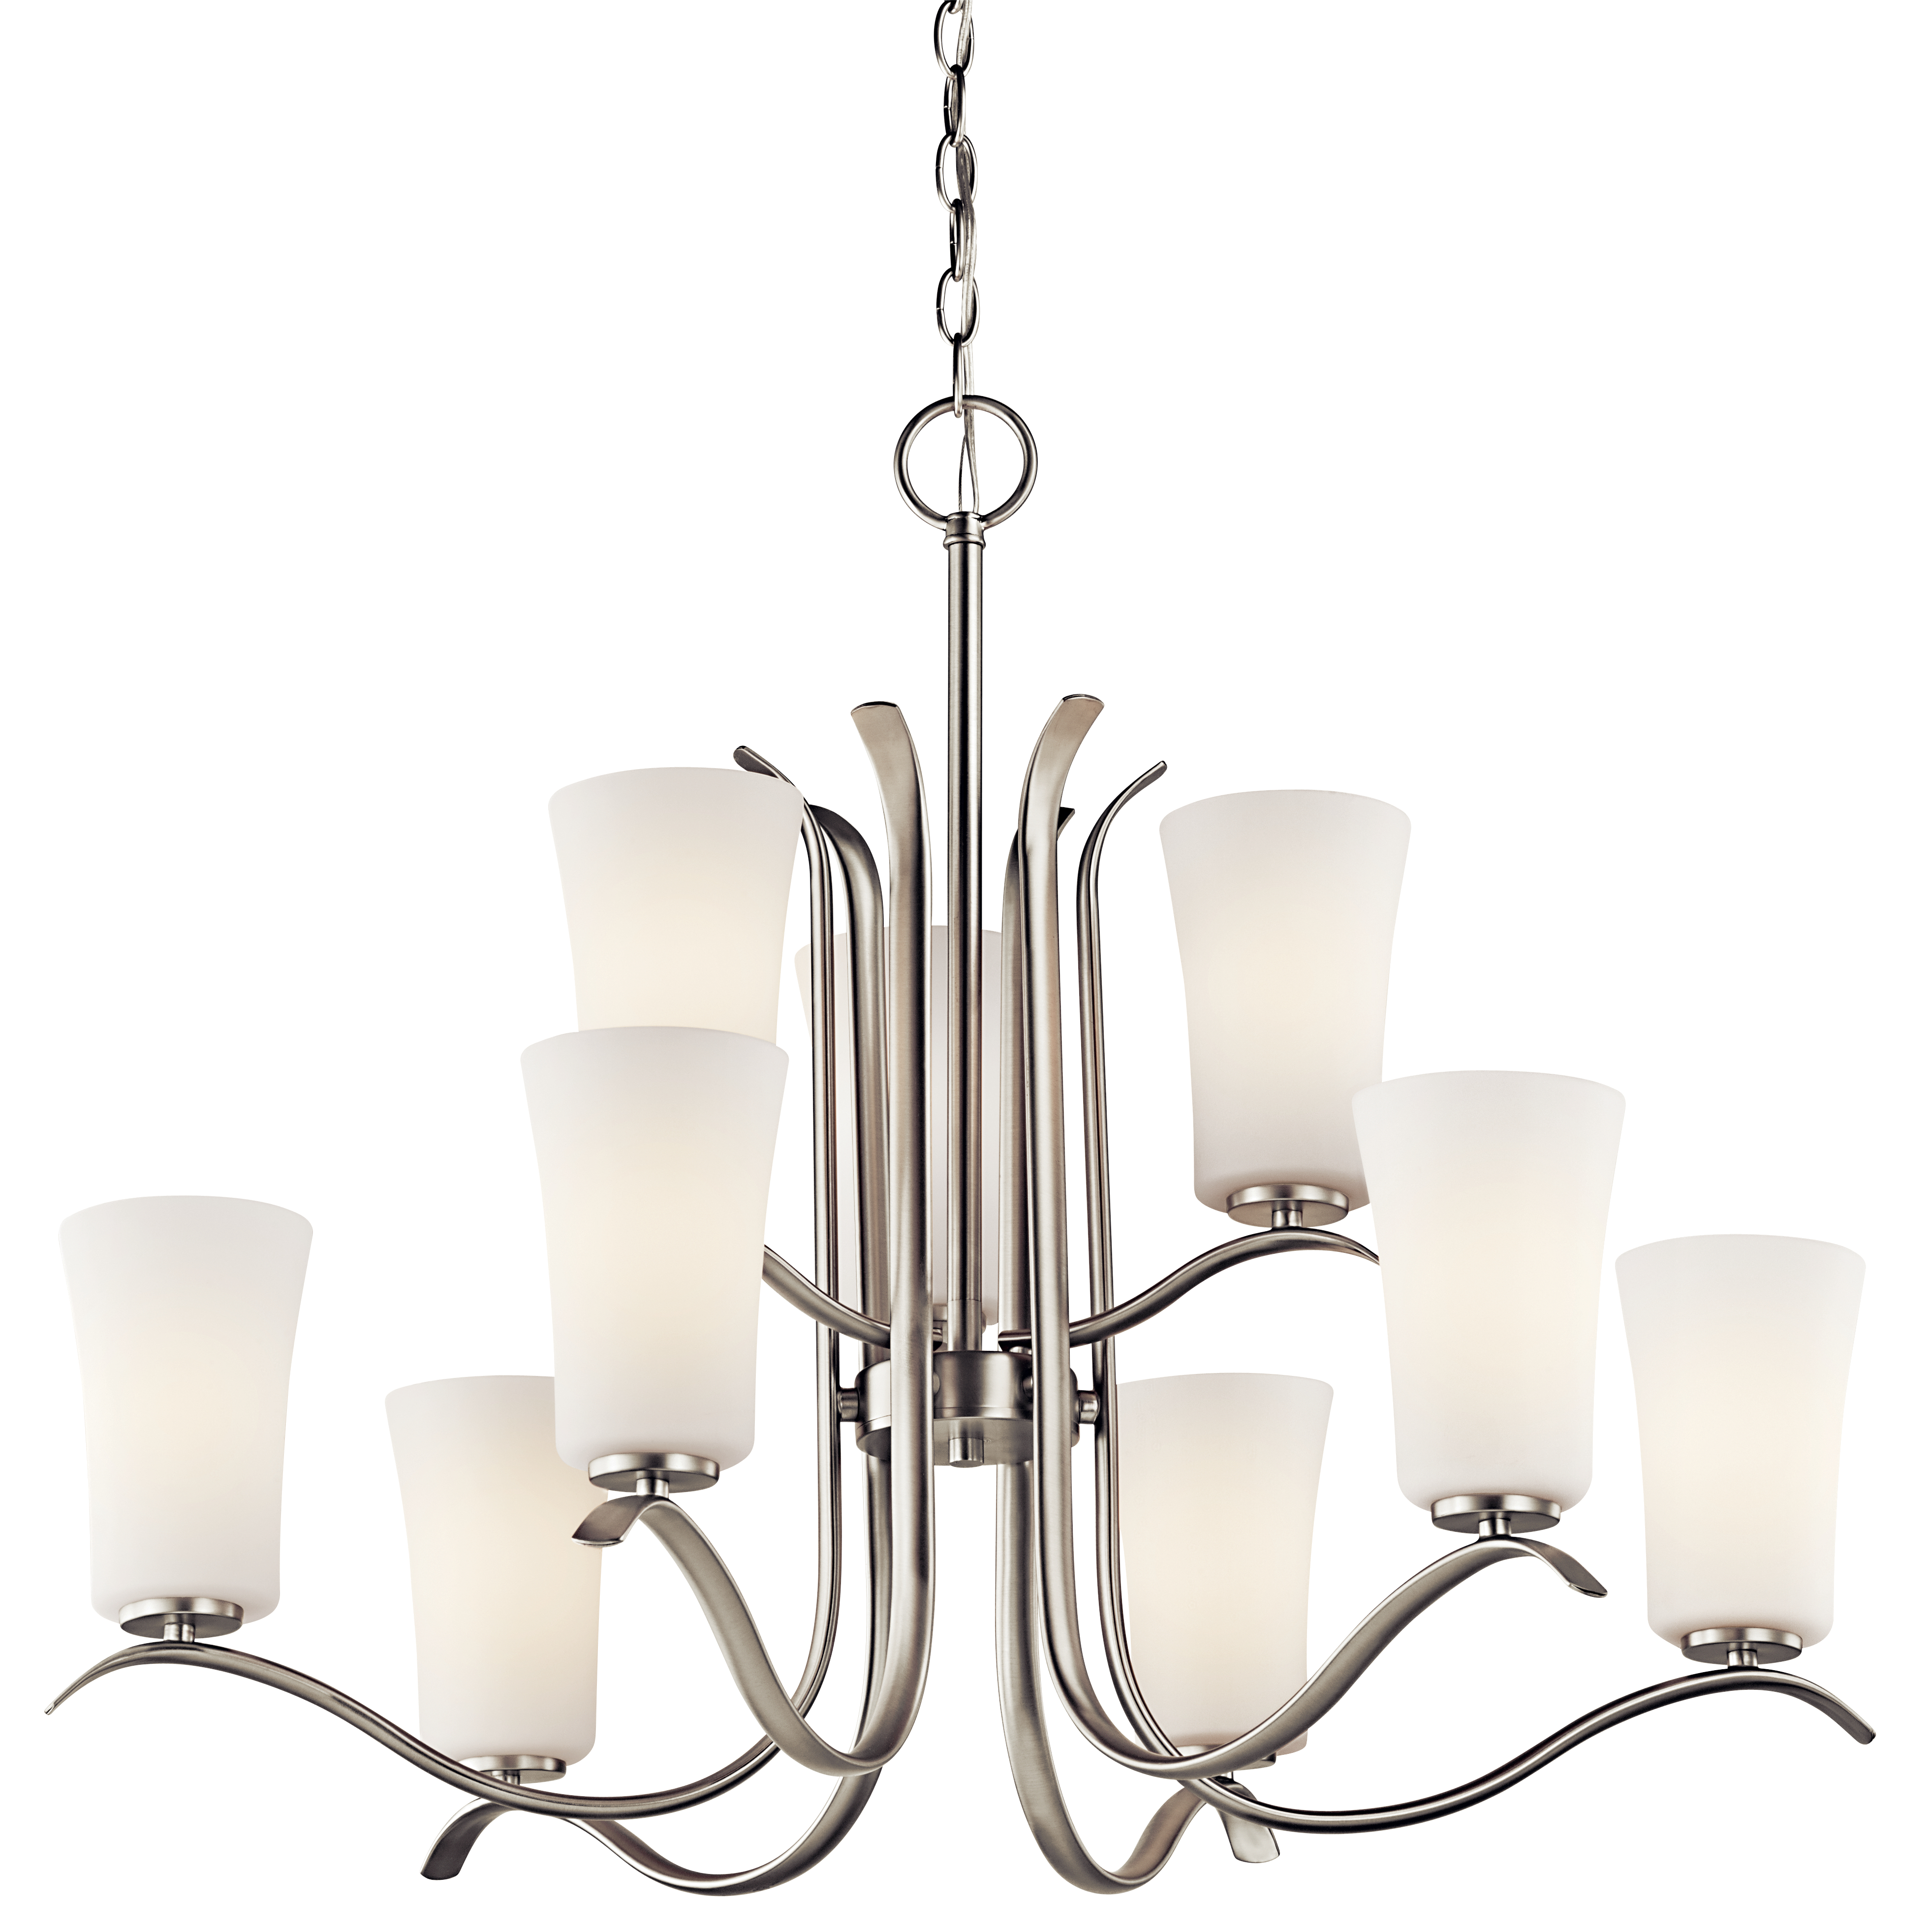 Kichler Armida LED Chandelier with Satin Etched White Shade - Brushed Nickel (43075NIL16)